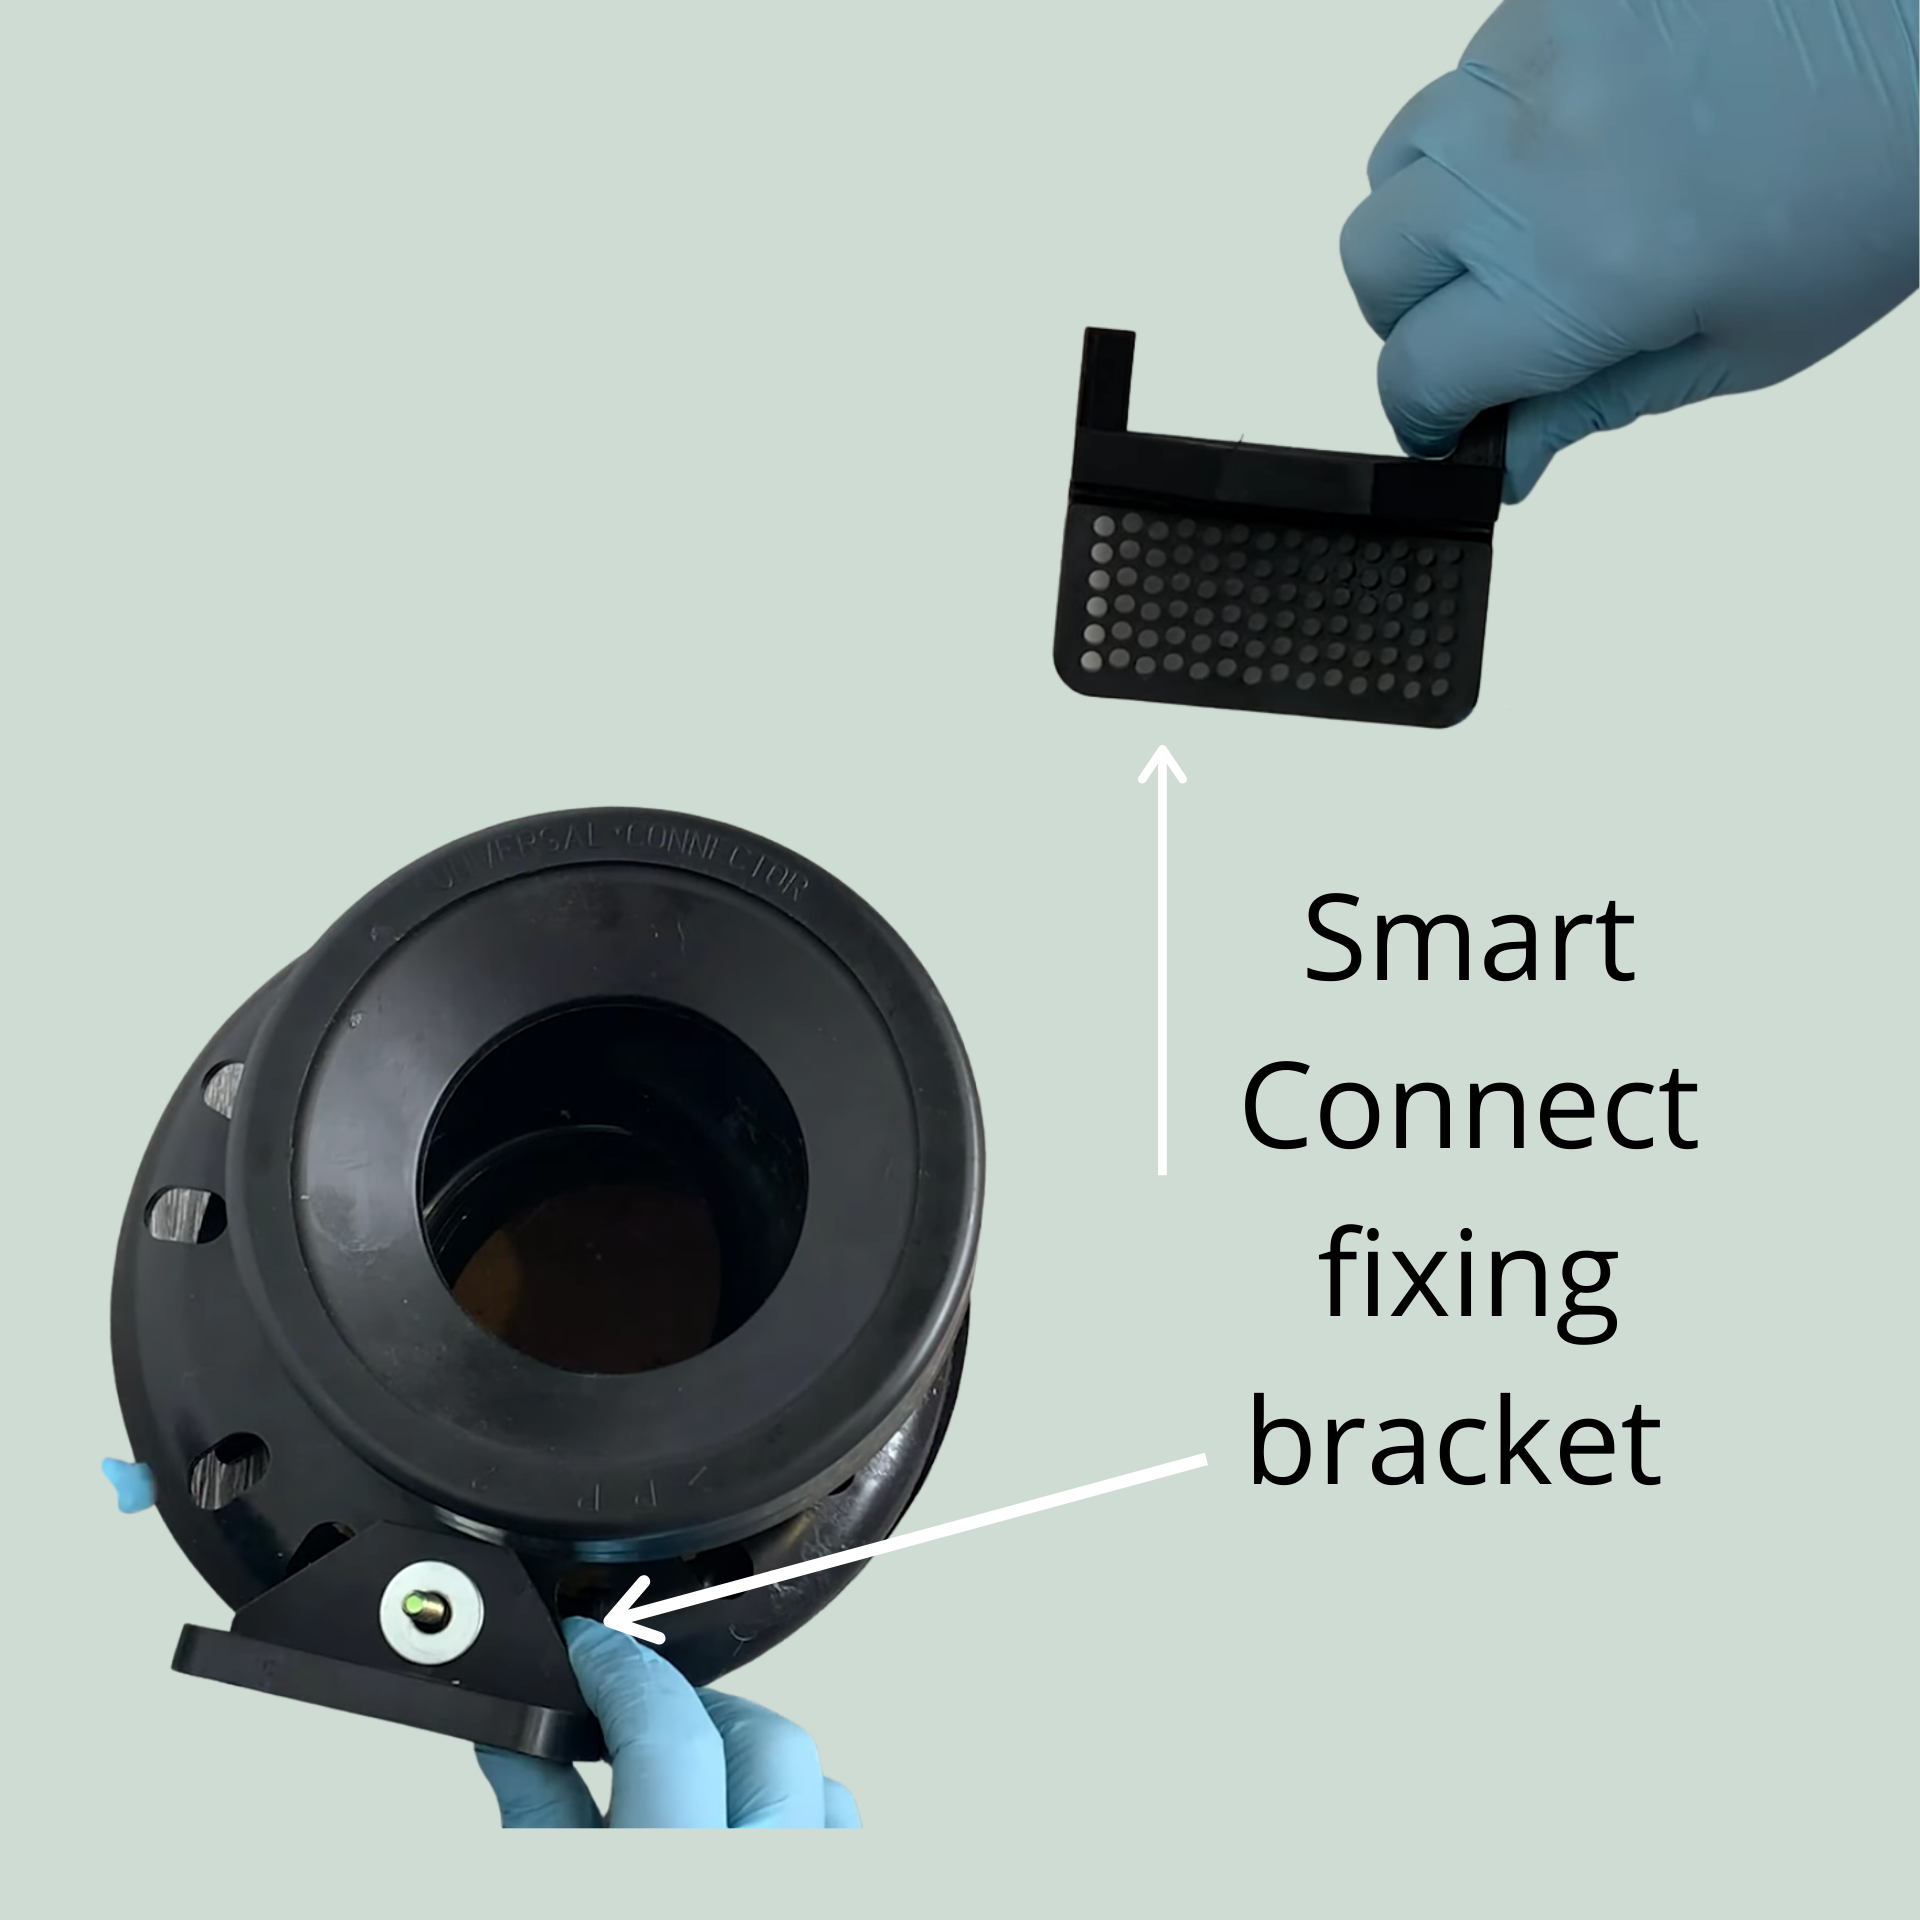 Installing the fixing bracket for Smart Connect